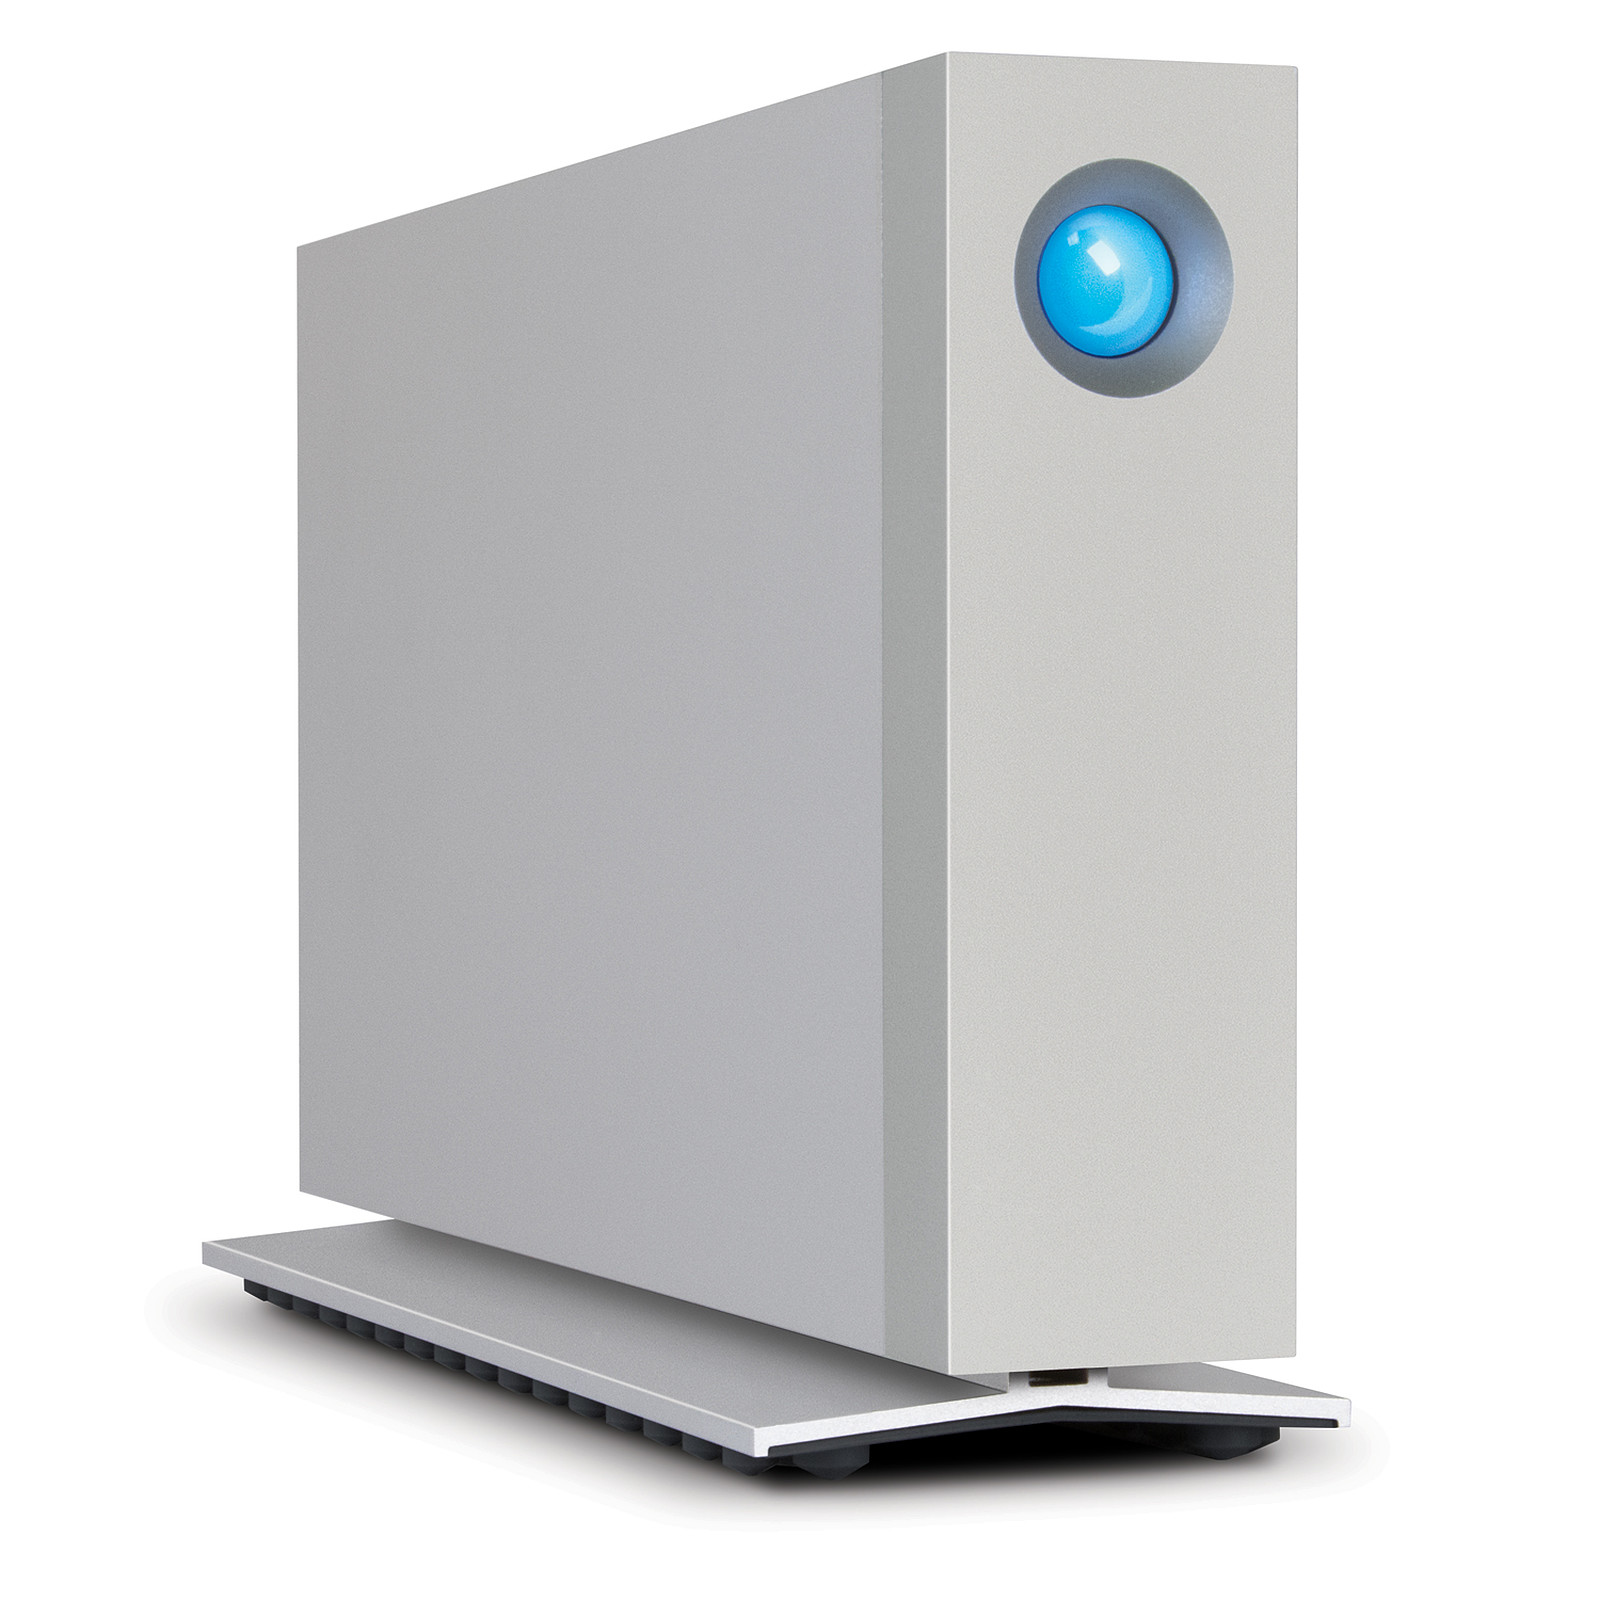 LaCie d2 Thunderbolt 2 et USB 3.0 (6 To)